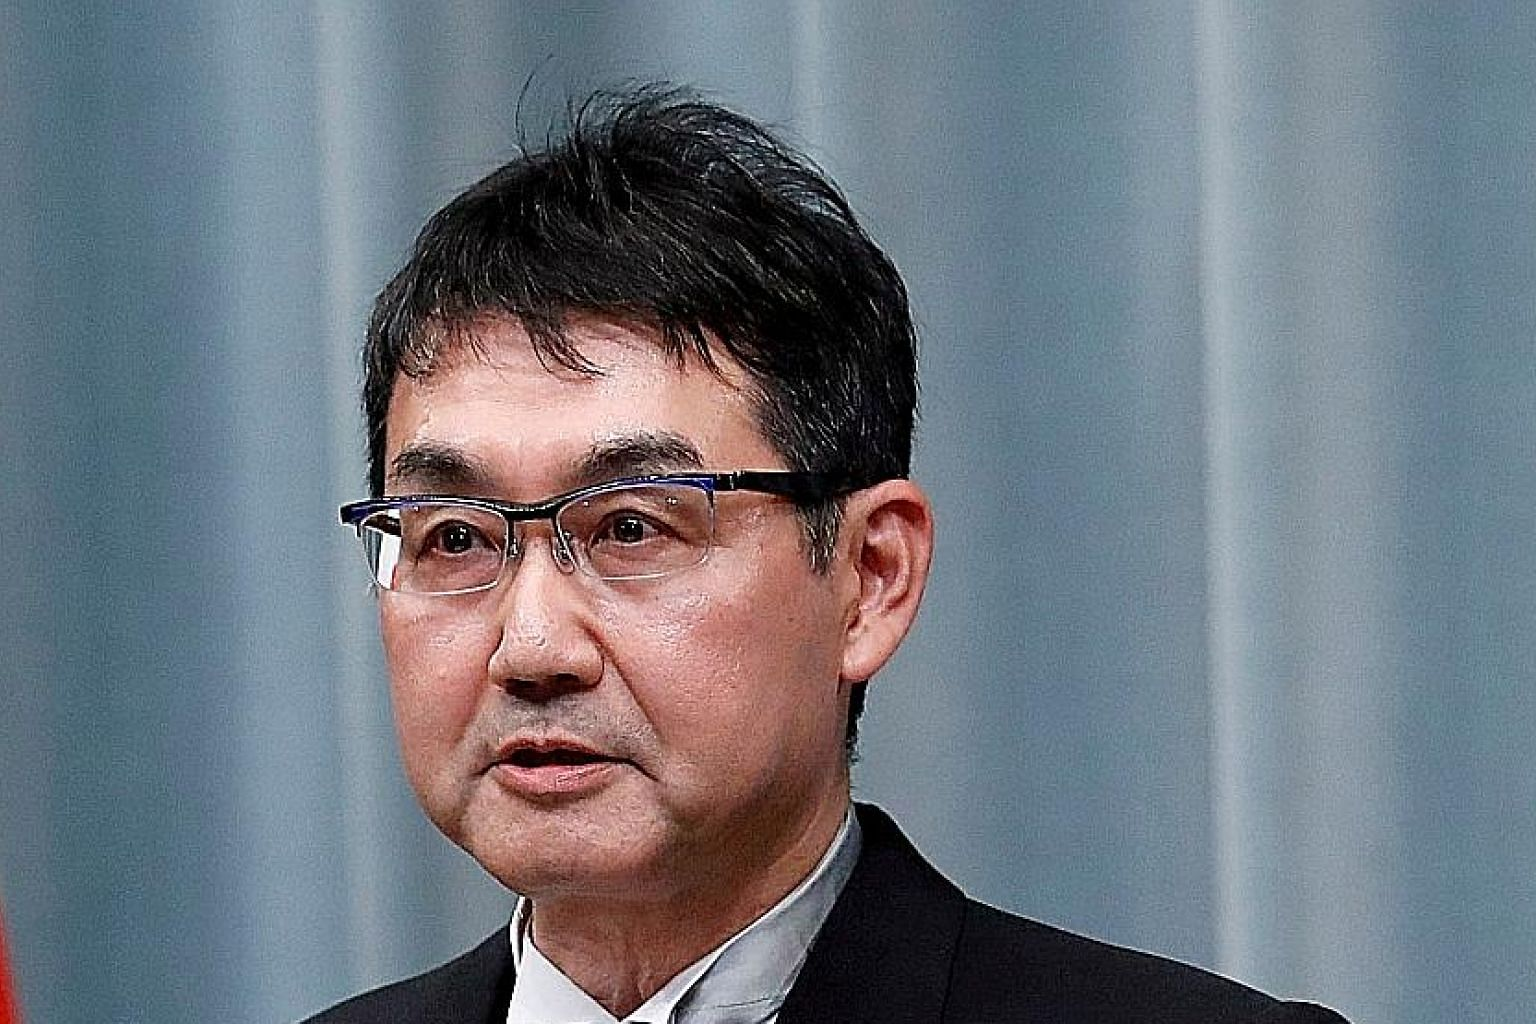 Japan's former justice minister Katsuyuki Kawai is accused of buying votes for his wife at last July's Upper House election.